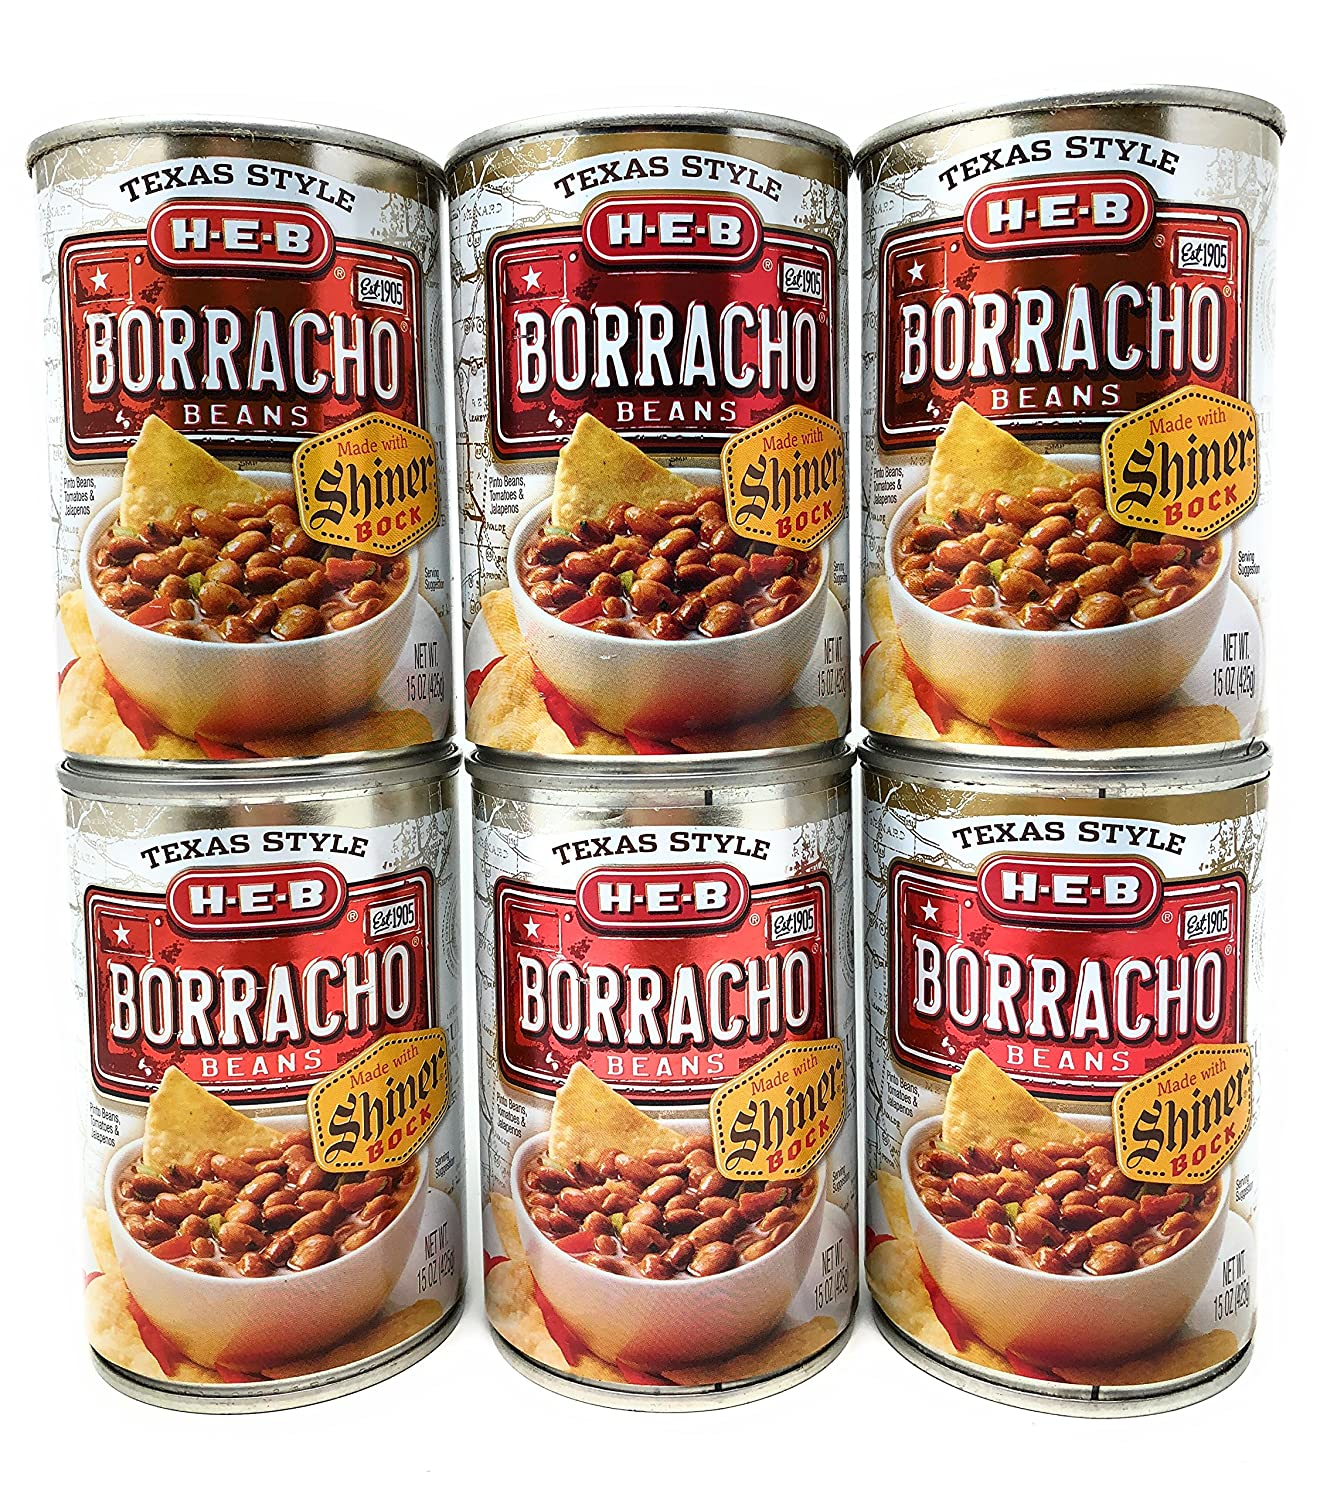 HEB Borracho Beans Ranking TOP9 Made with Shiner 6 Manufacturer regenerated product Beer 15oz of Bock Pack